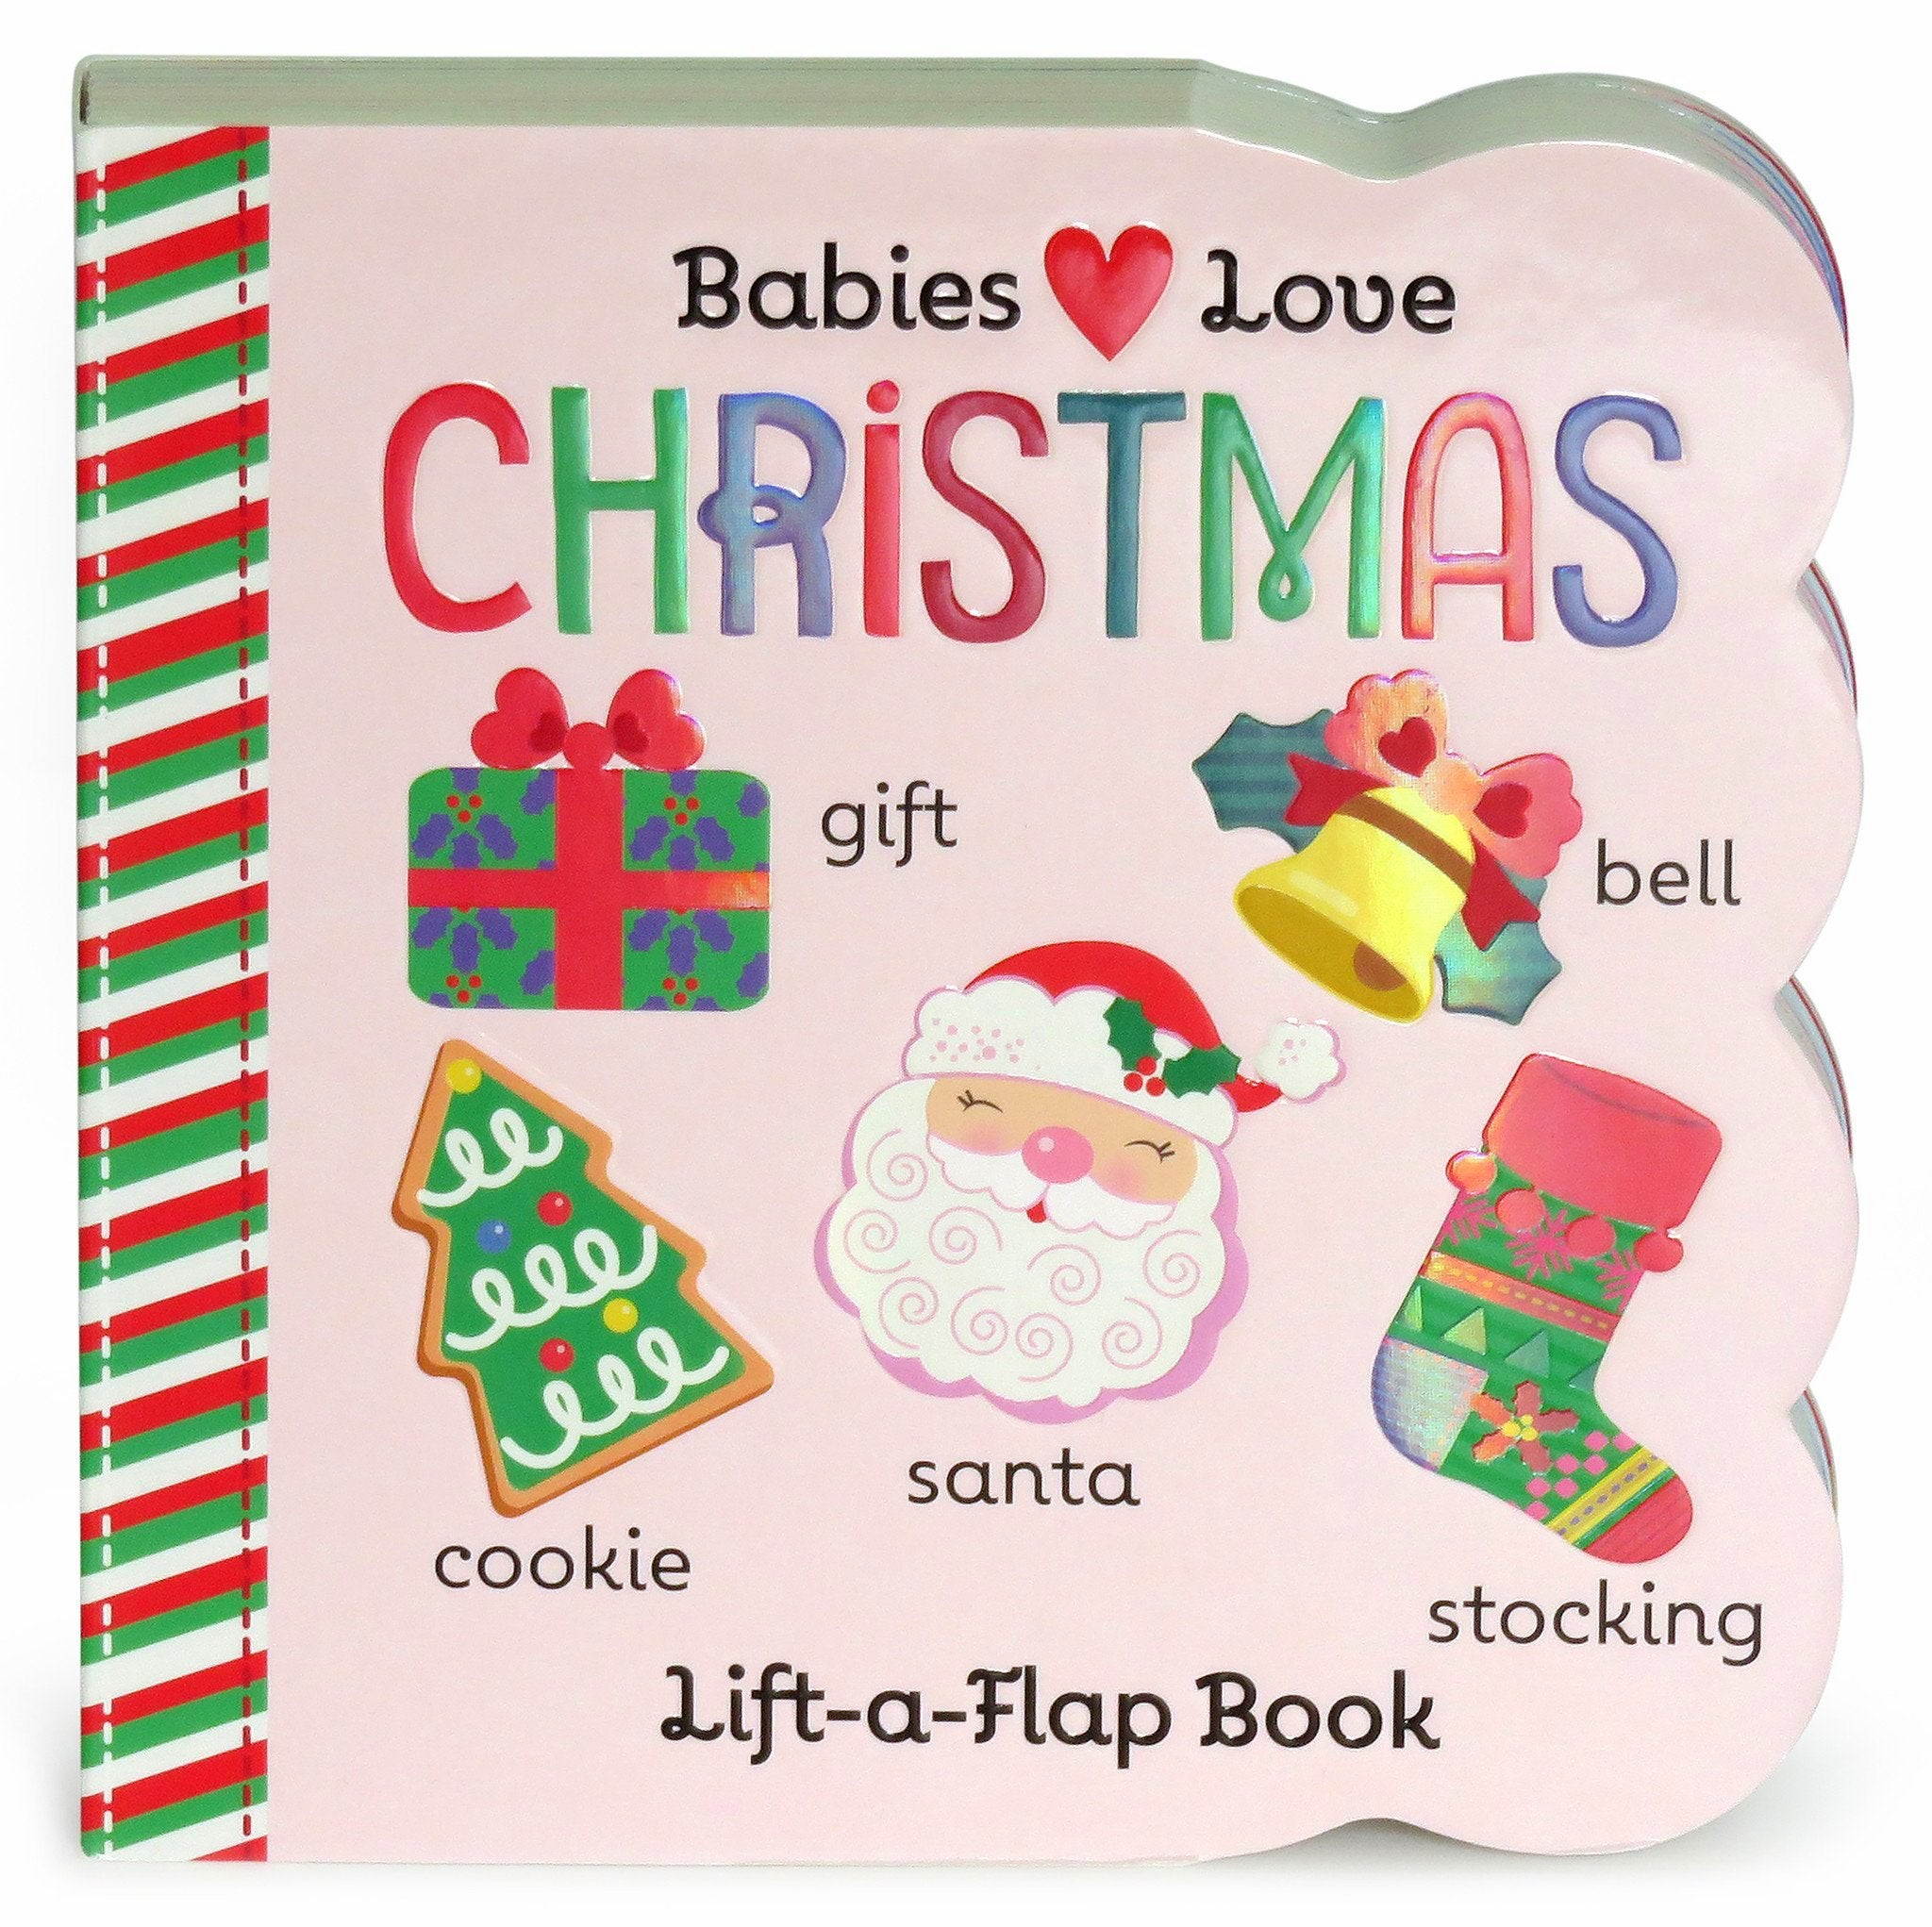 beautiful board books and gifts for babies and toddlers